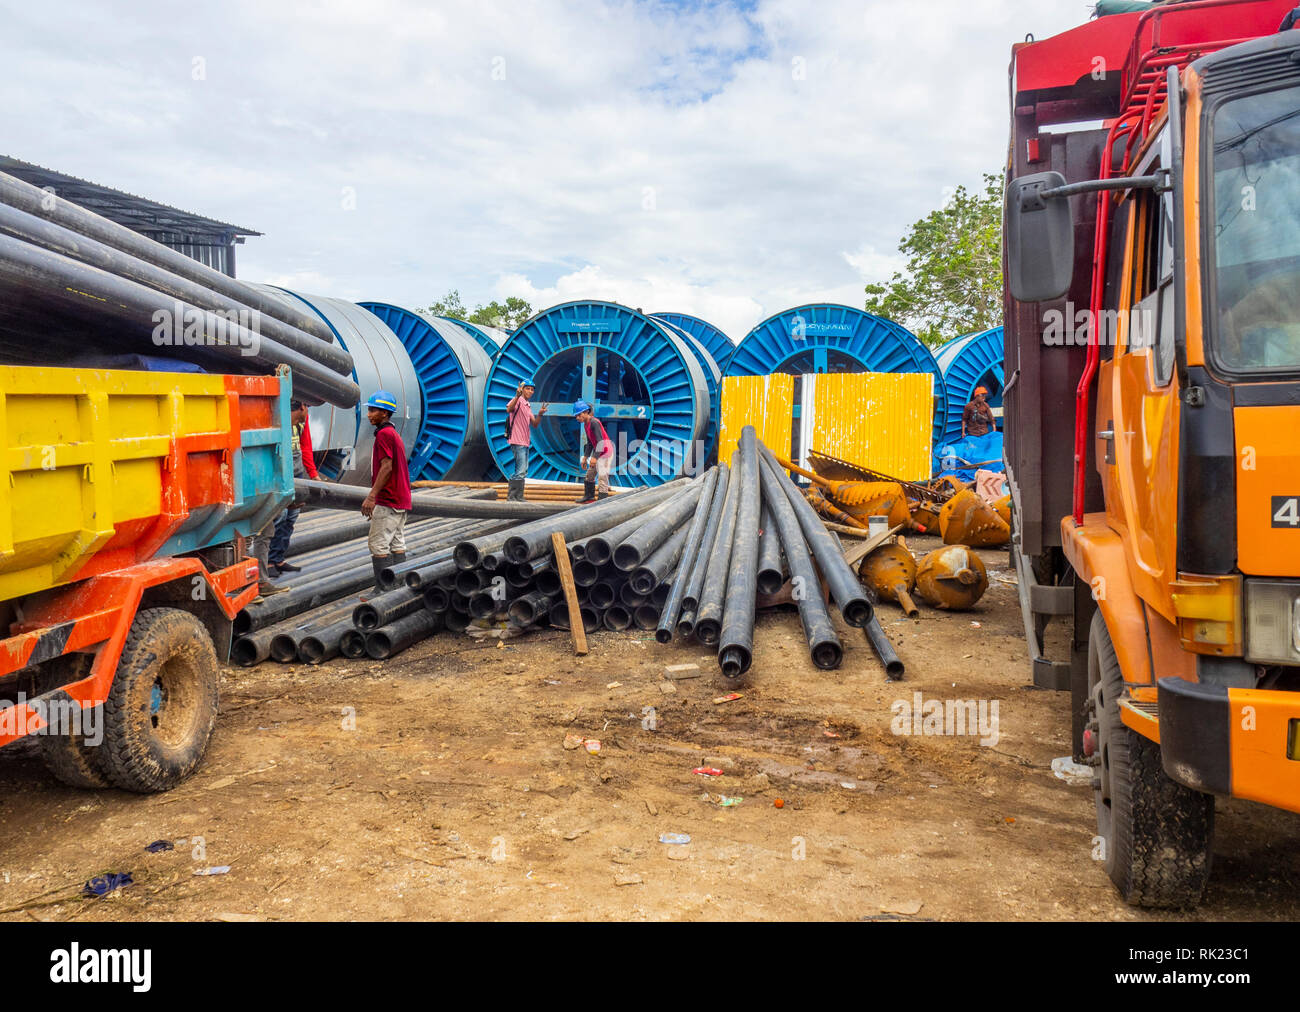 Workmen in a yard unloading pipes from a truck in Jimbaran, Bali Indonesia. - Stock Image